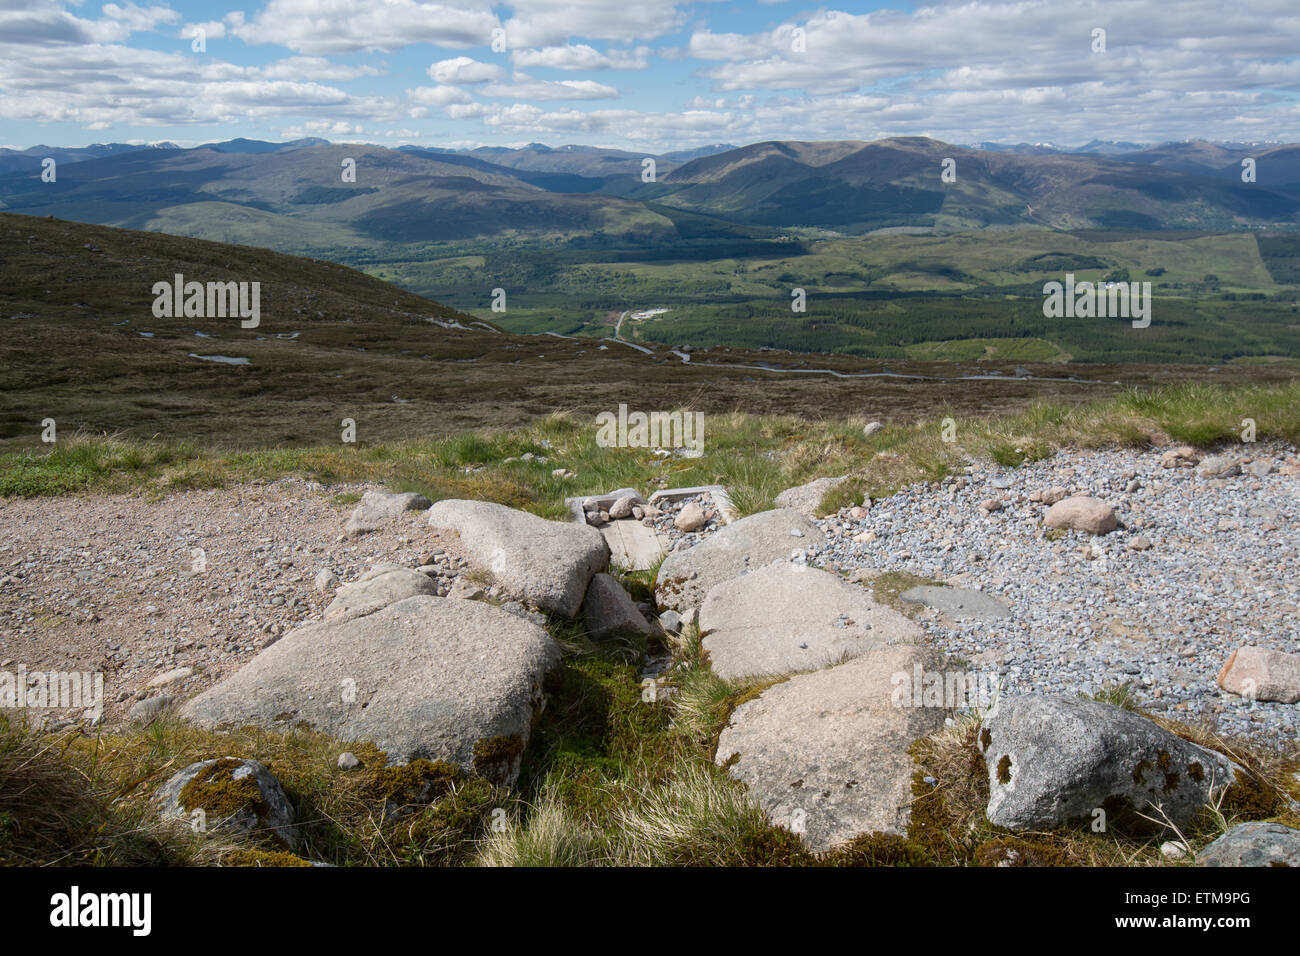 Upland path drainage technique - Stone Cross-drain on footpath on Aonach Mor, Fort William, Scotland, UK - Stock Image